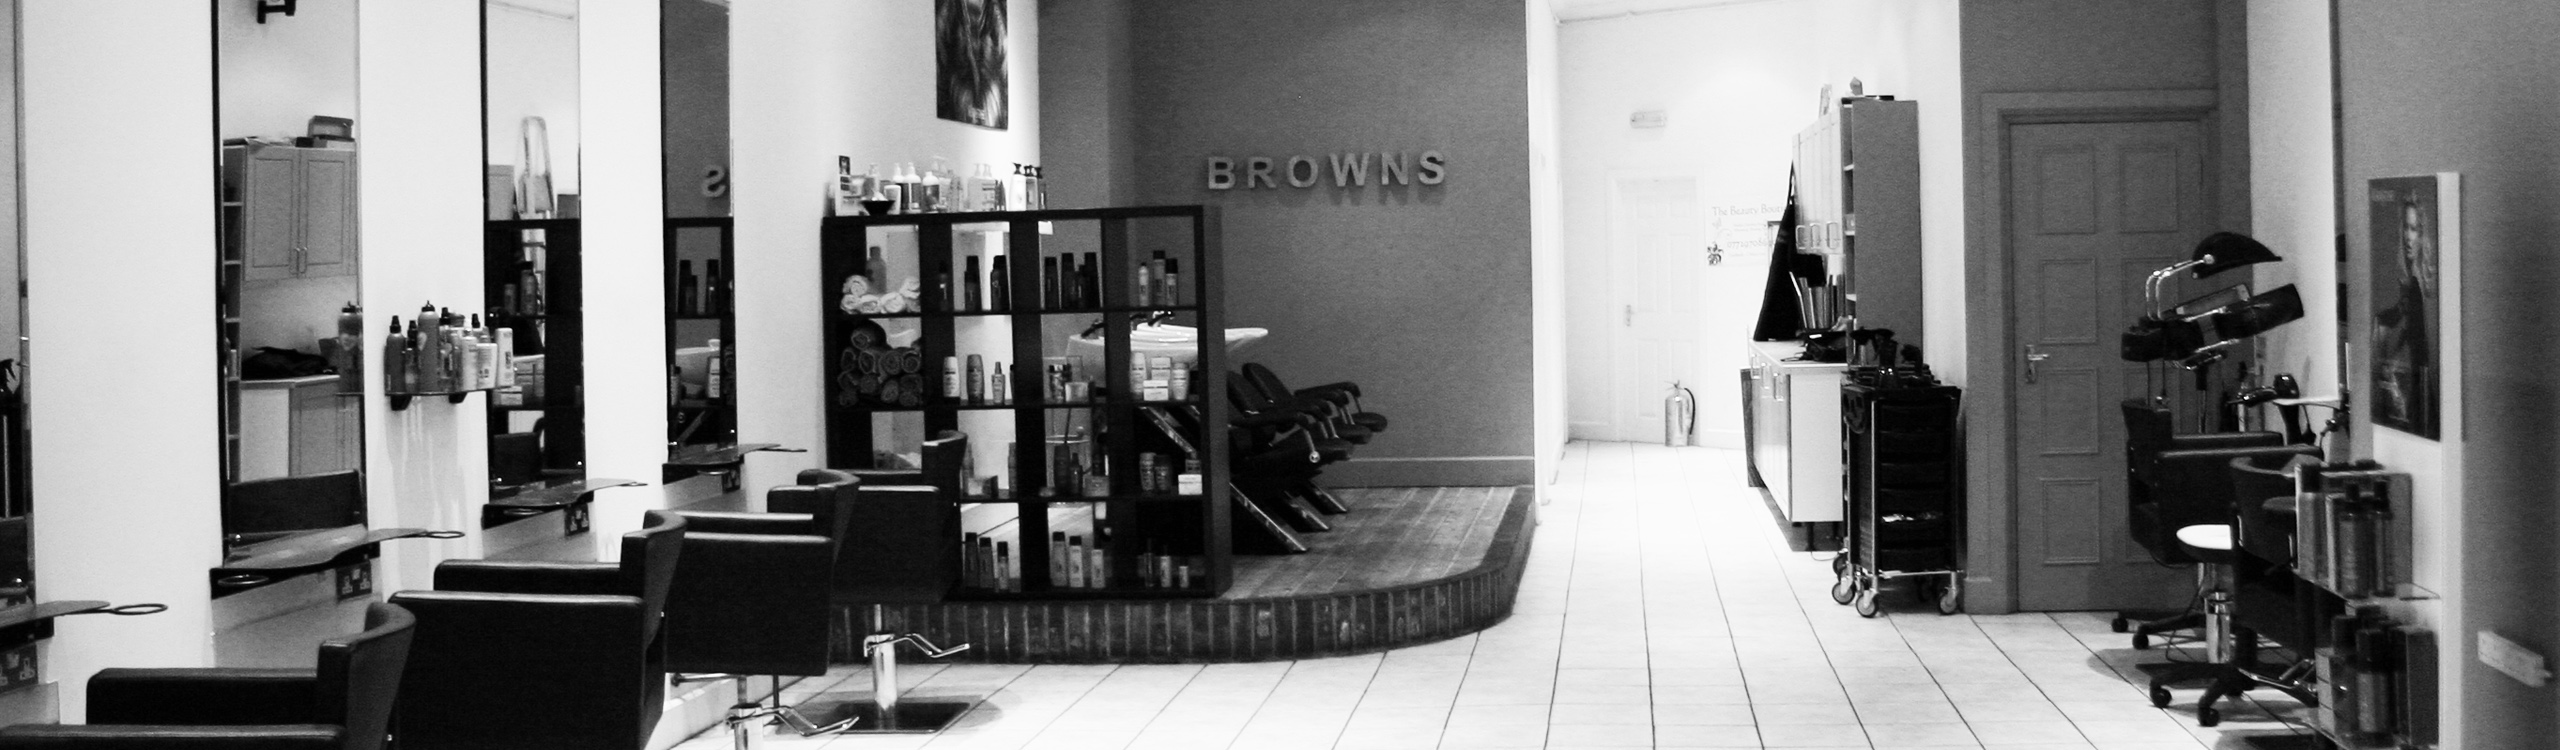 Browns Hair & Beauty Salon 1